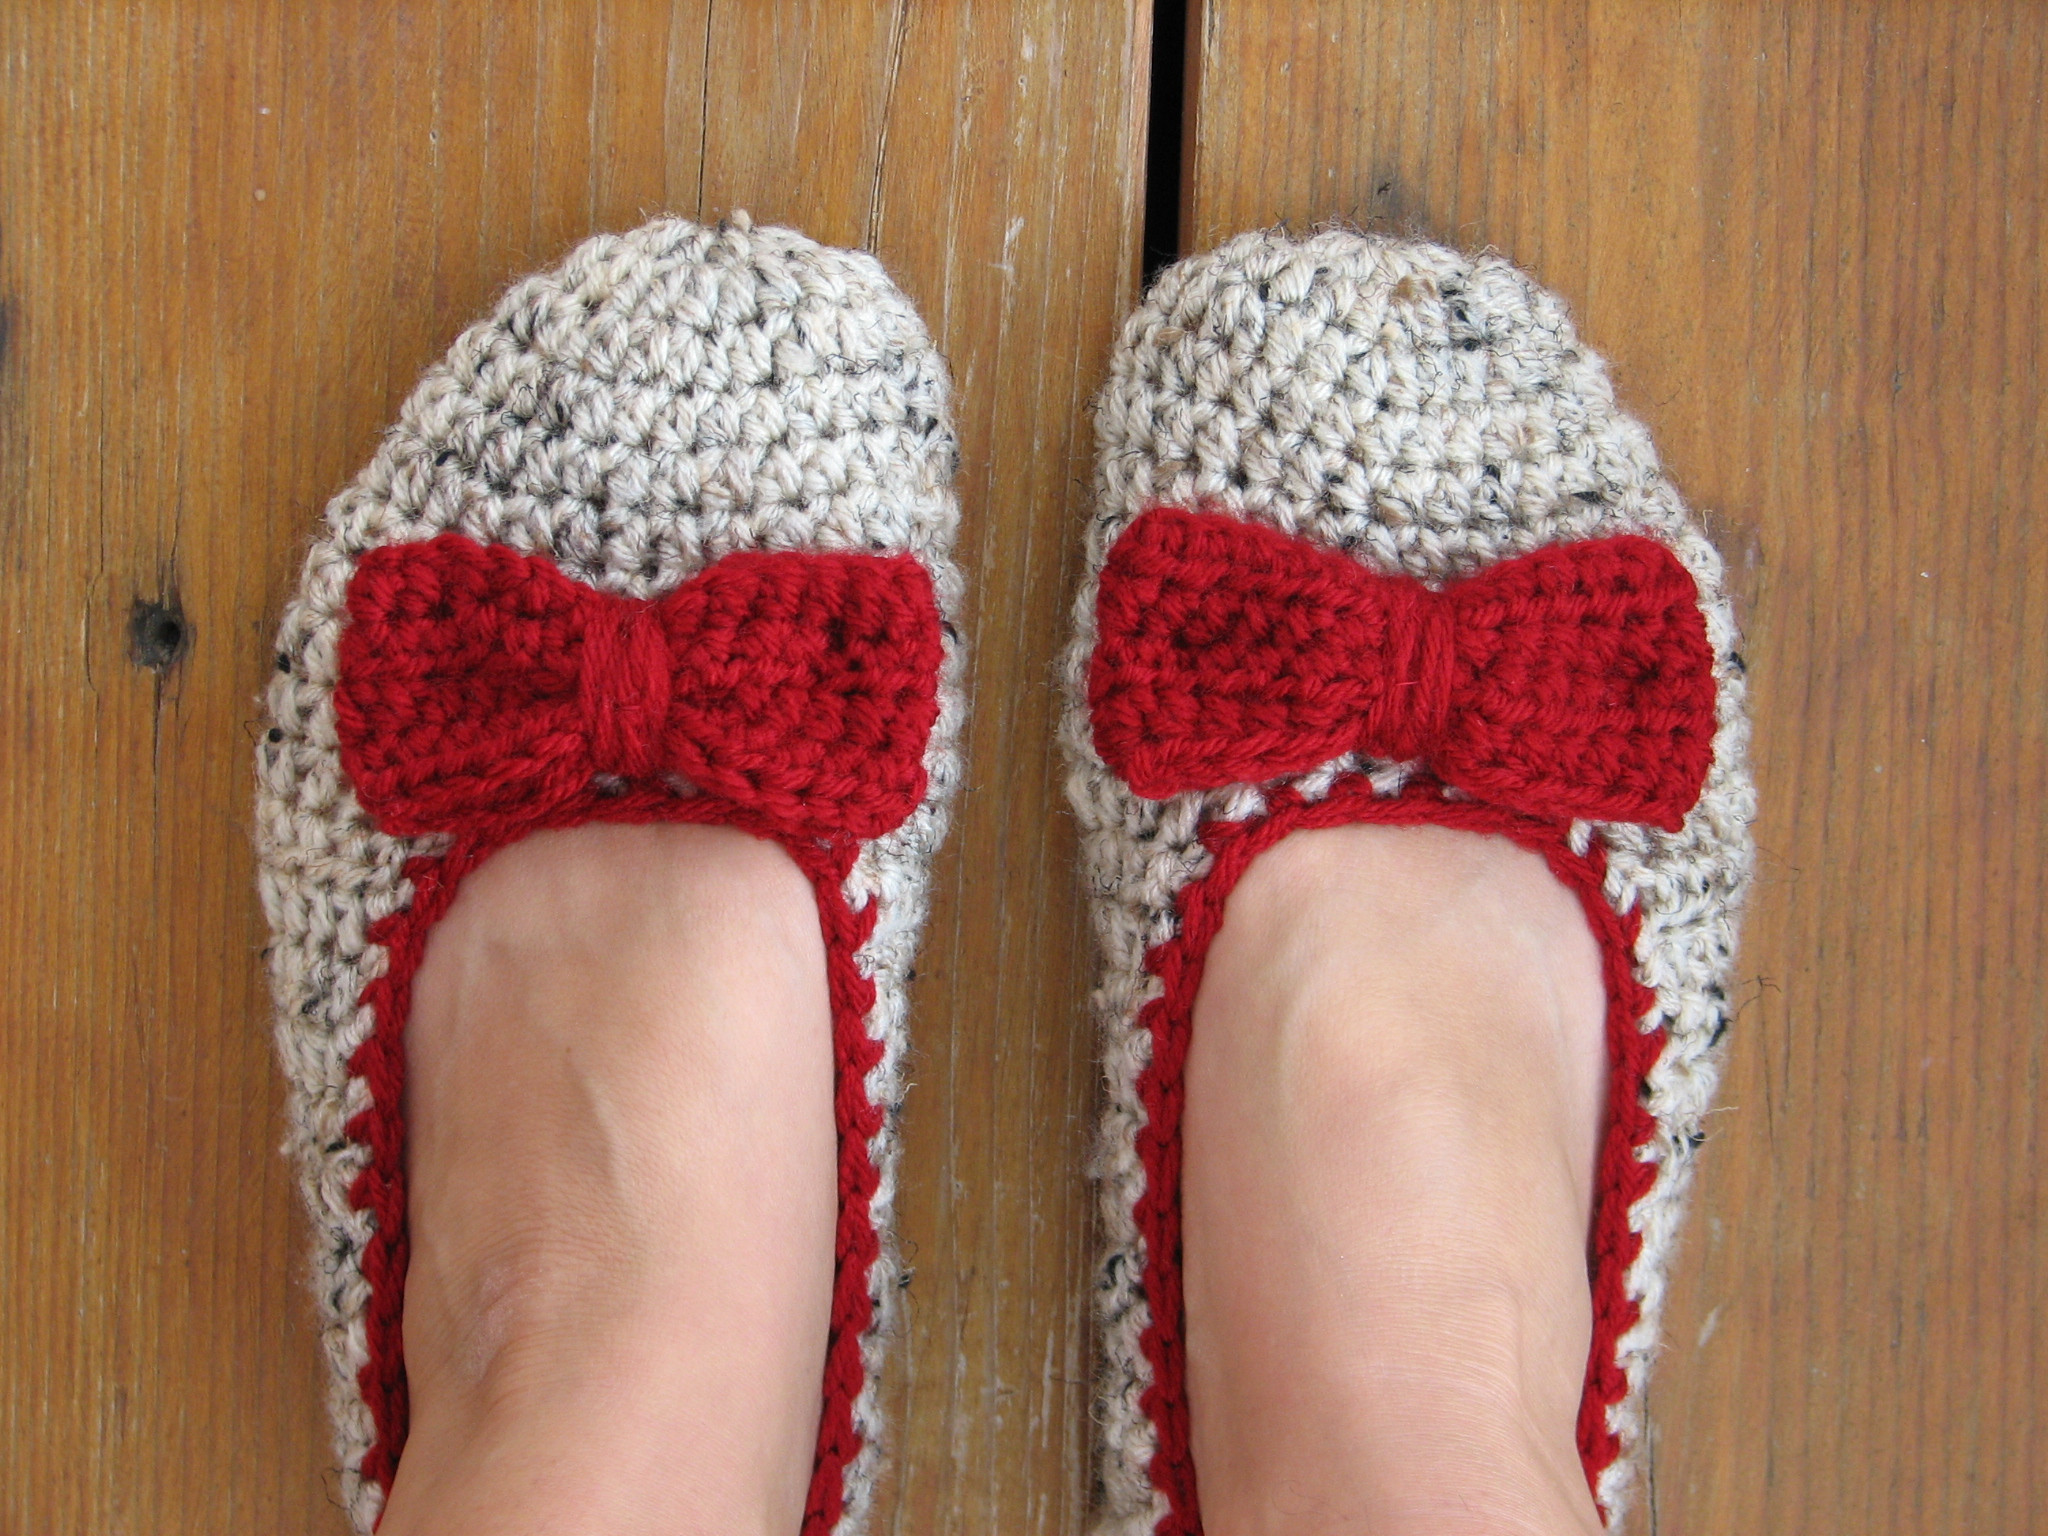 Inspirational Crochet Women Slippers Oatmeal with Red Bow Accessories Crochet Adult Slippers Of Charming 47 Ideas Crochet Adult Slippers